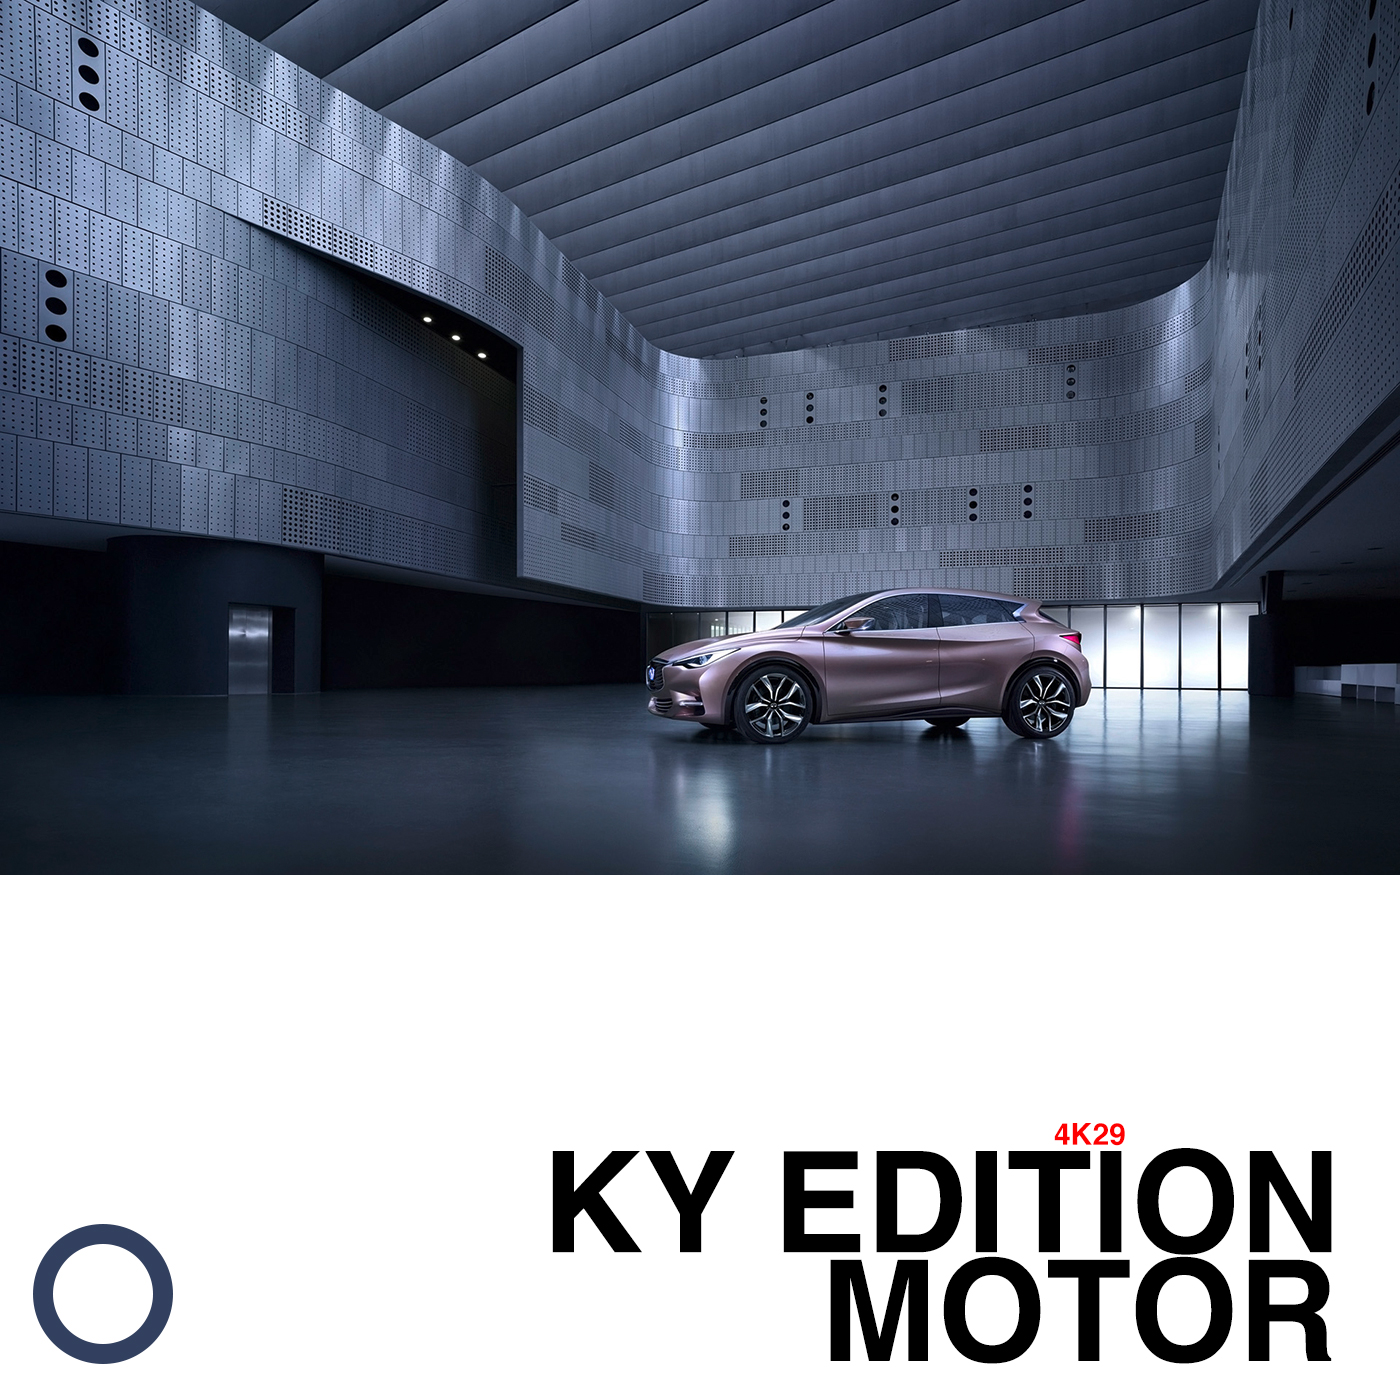 KY EDITION MOTOR 4K29 MOBILE640